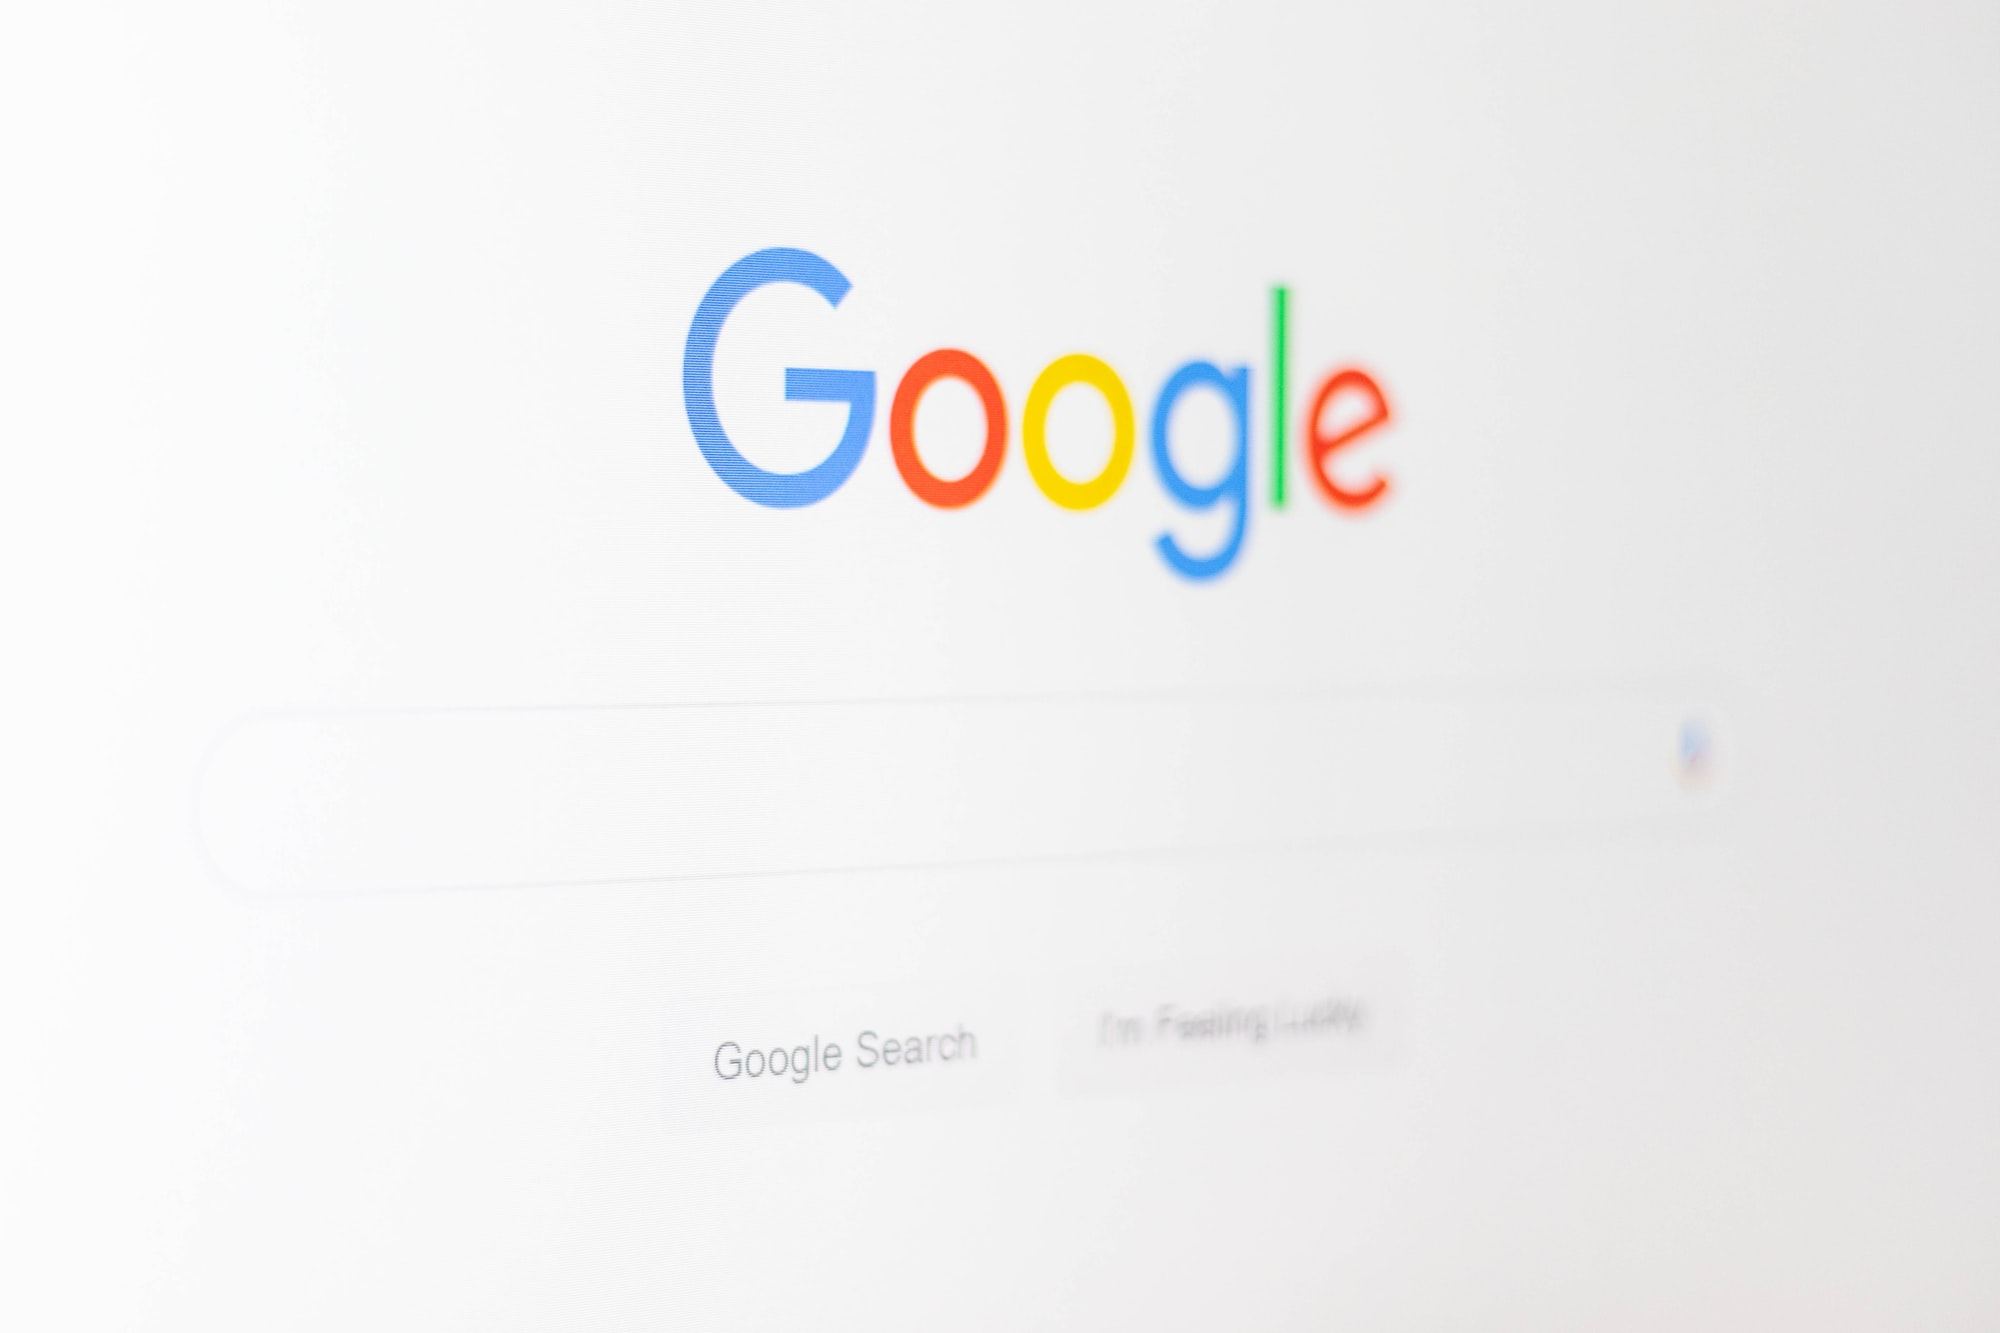 Google Drive missing a feature? Write one.